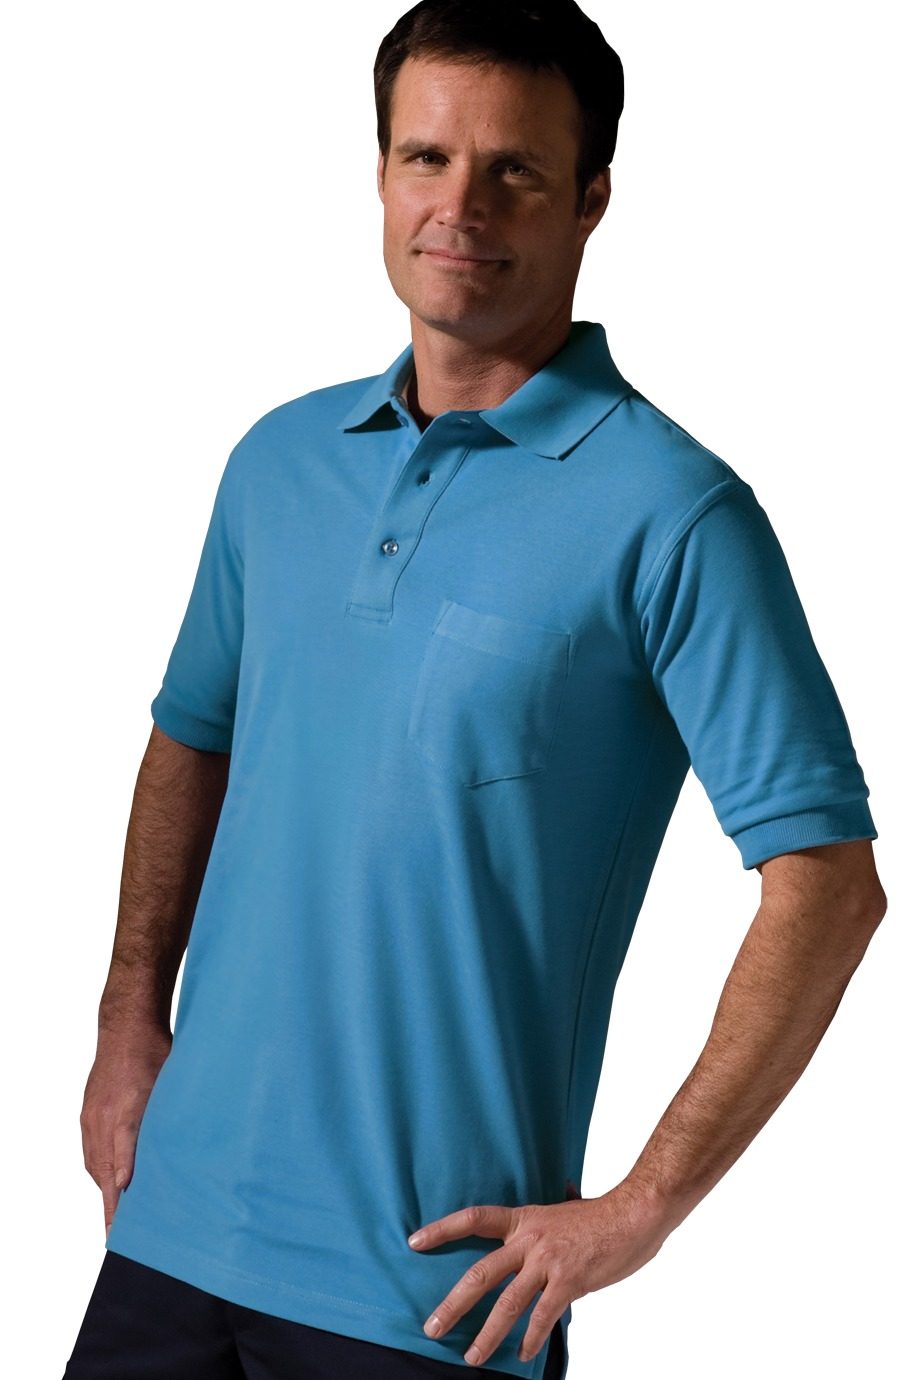 Edwards Garment 1505 - Soft Touch Short Sleeve Pique Polo With Pocket